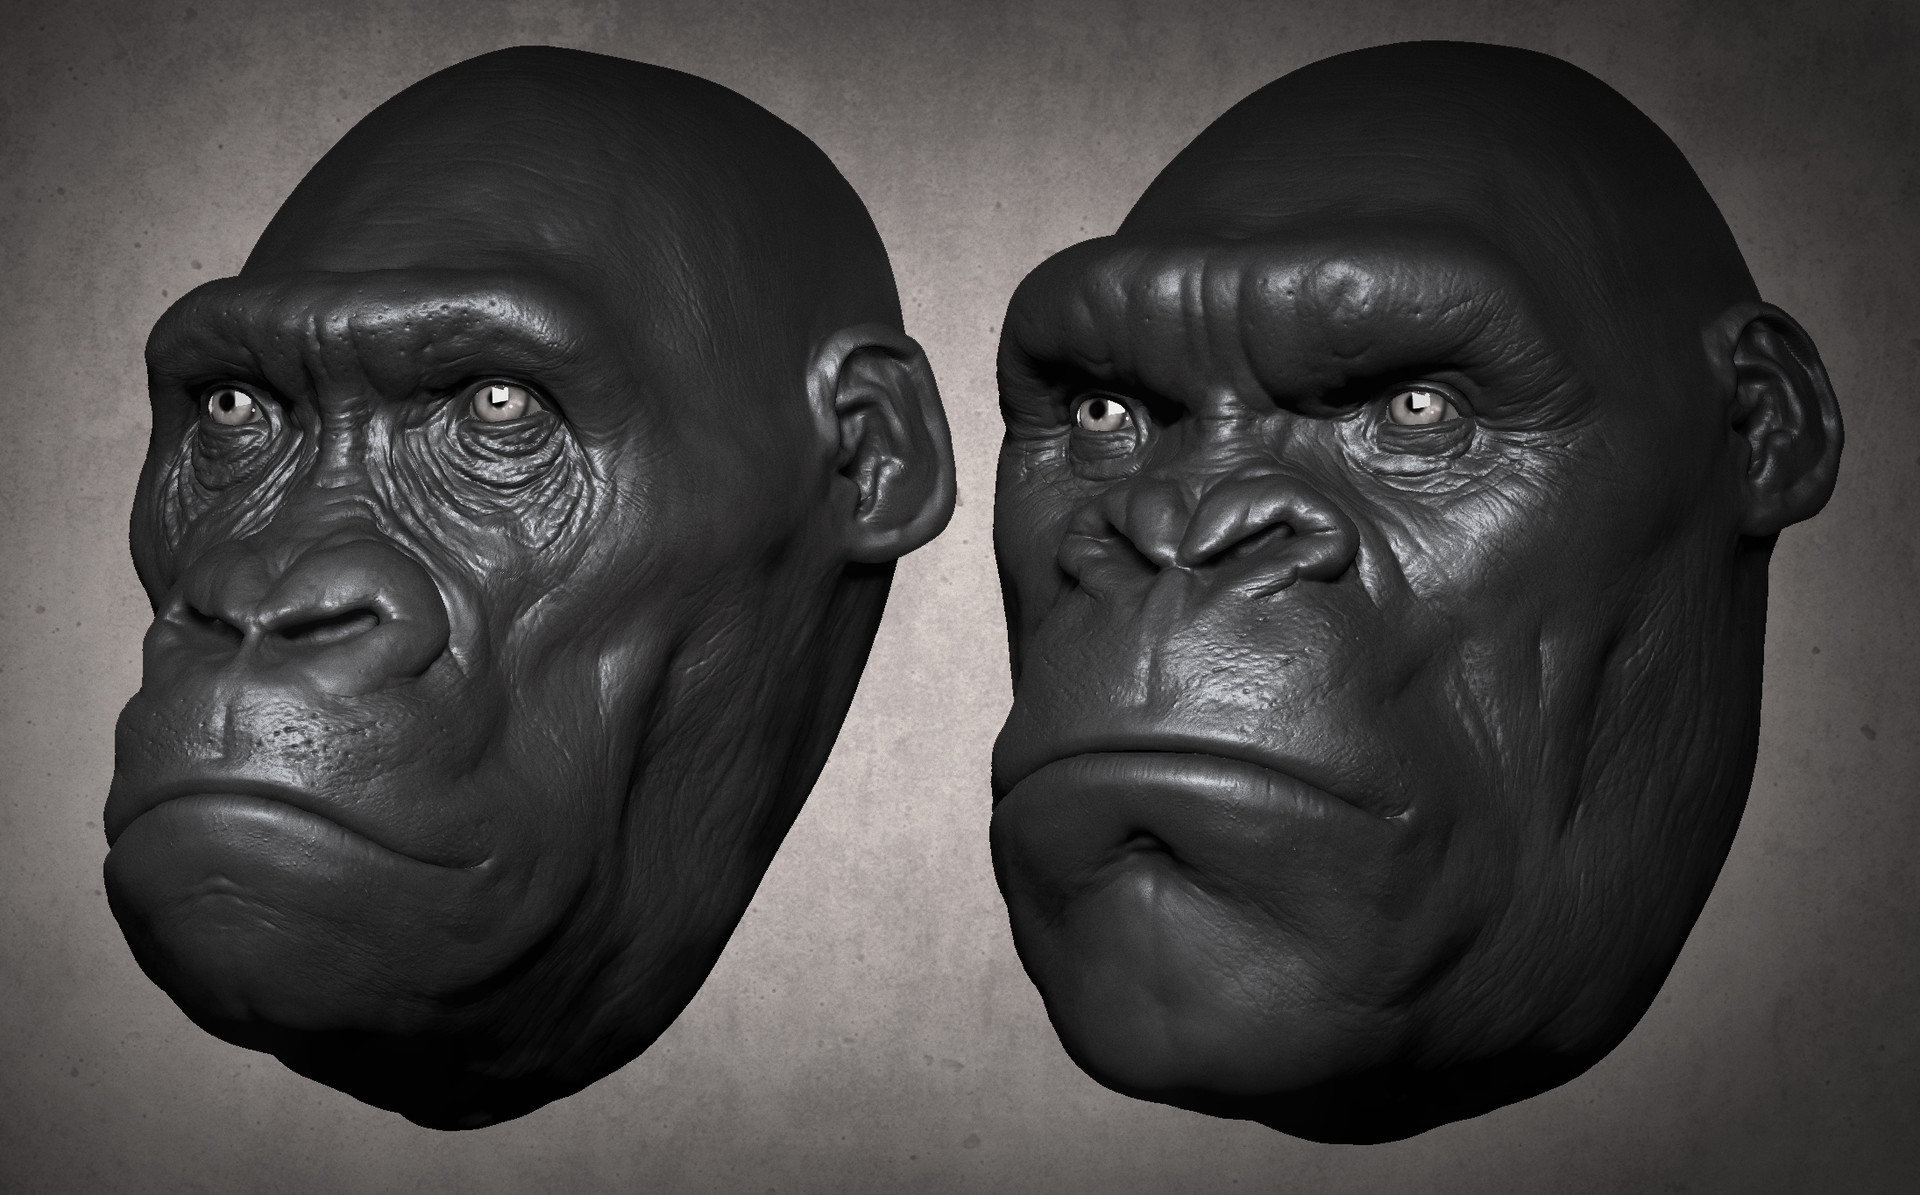 Gorilla to Kong comparison study (speed sculpt)